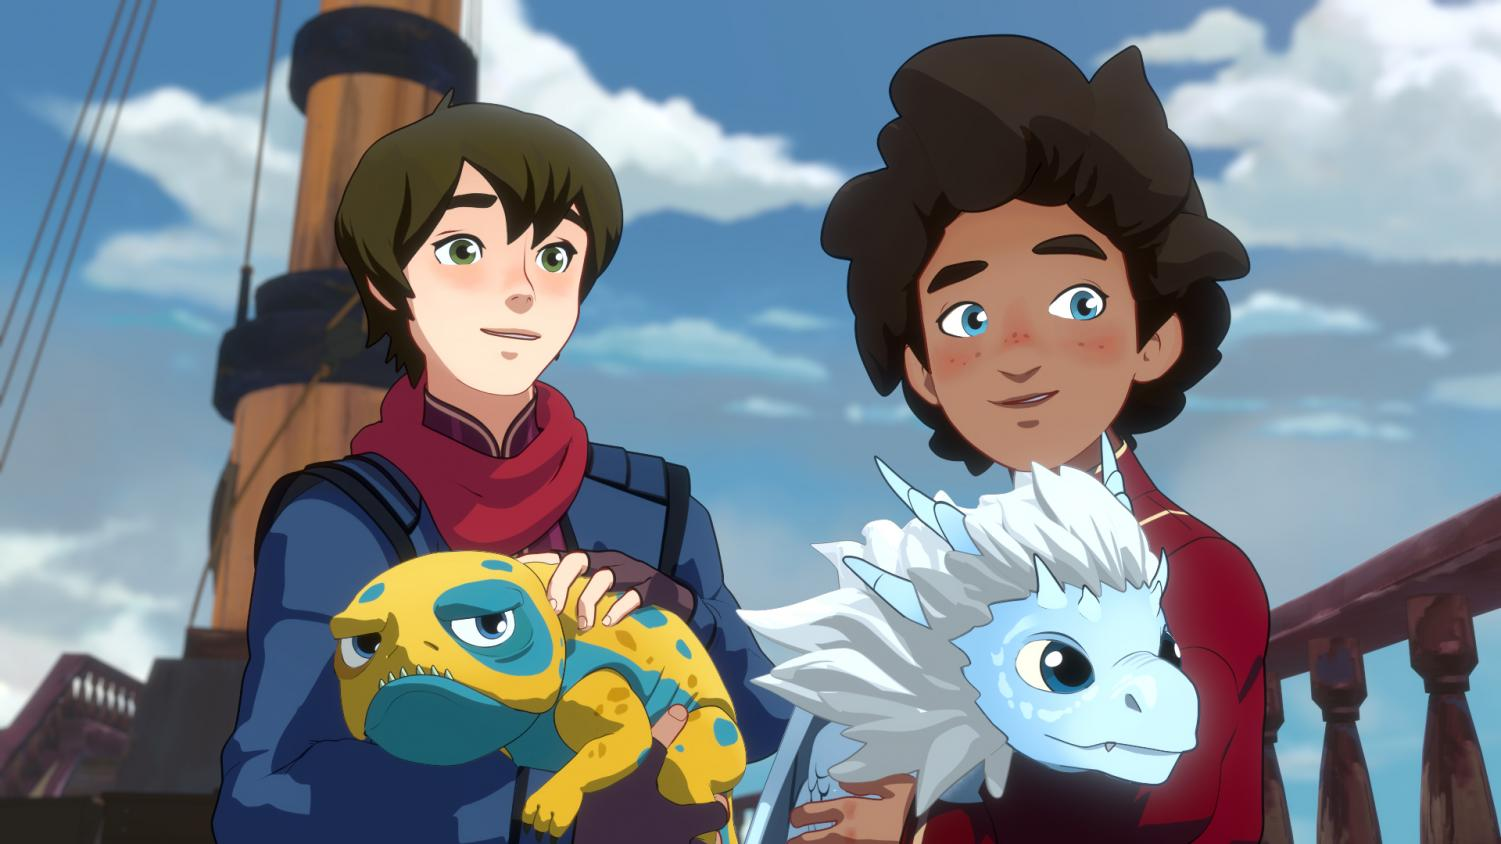 Callum holding Bait (left) and Ezran holding Zym (right) in Netflix's